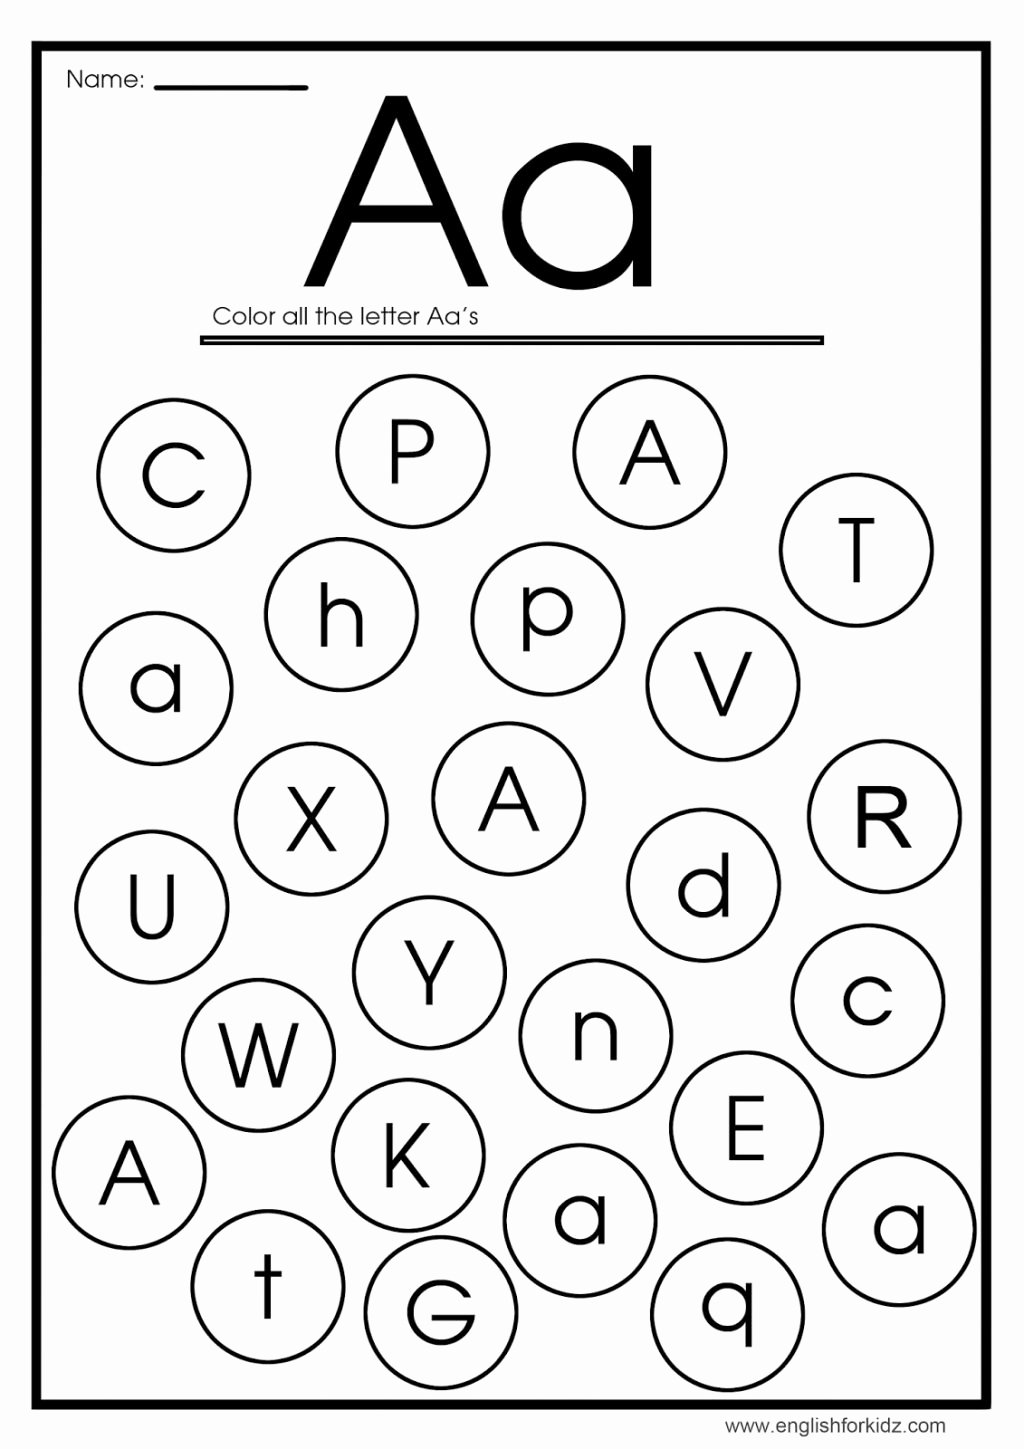 Worksheets For Preschoolers On Letters Lovely Letter C